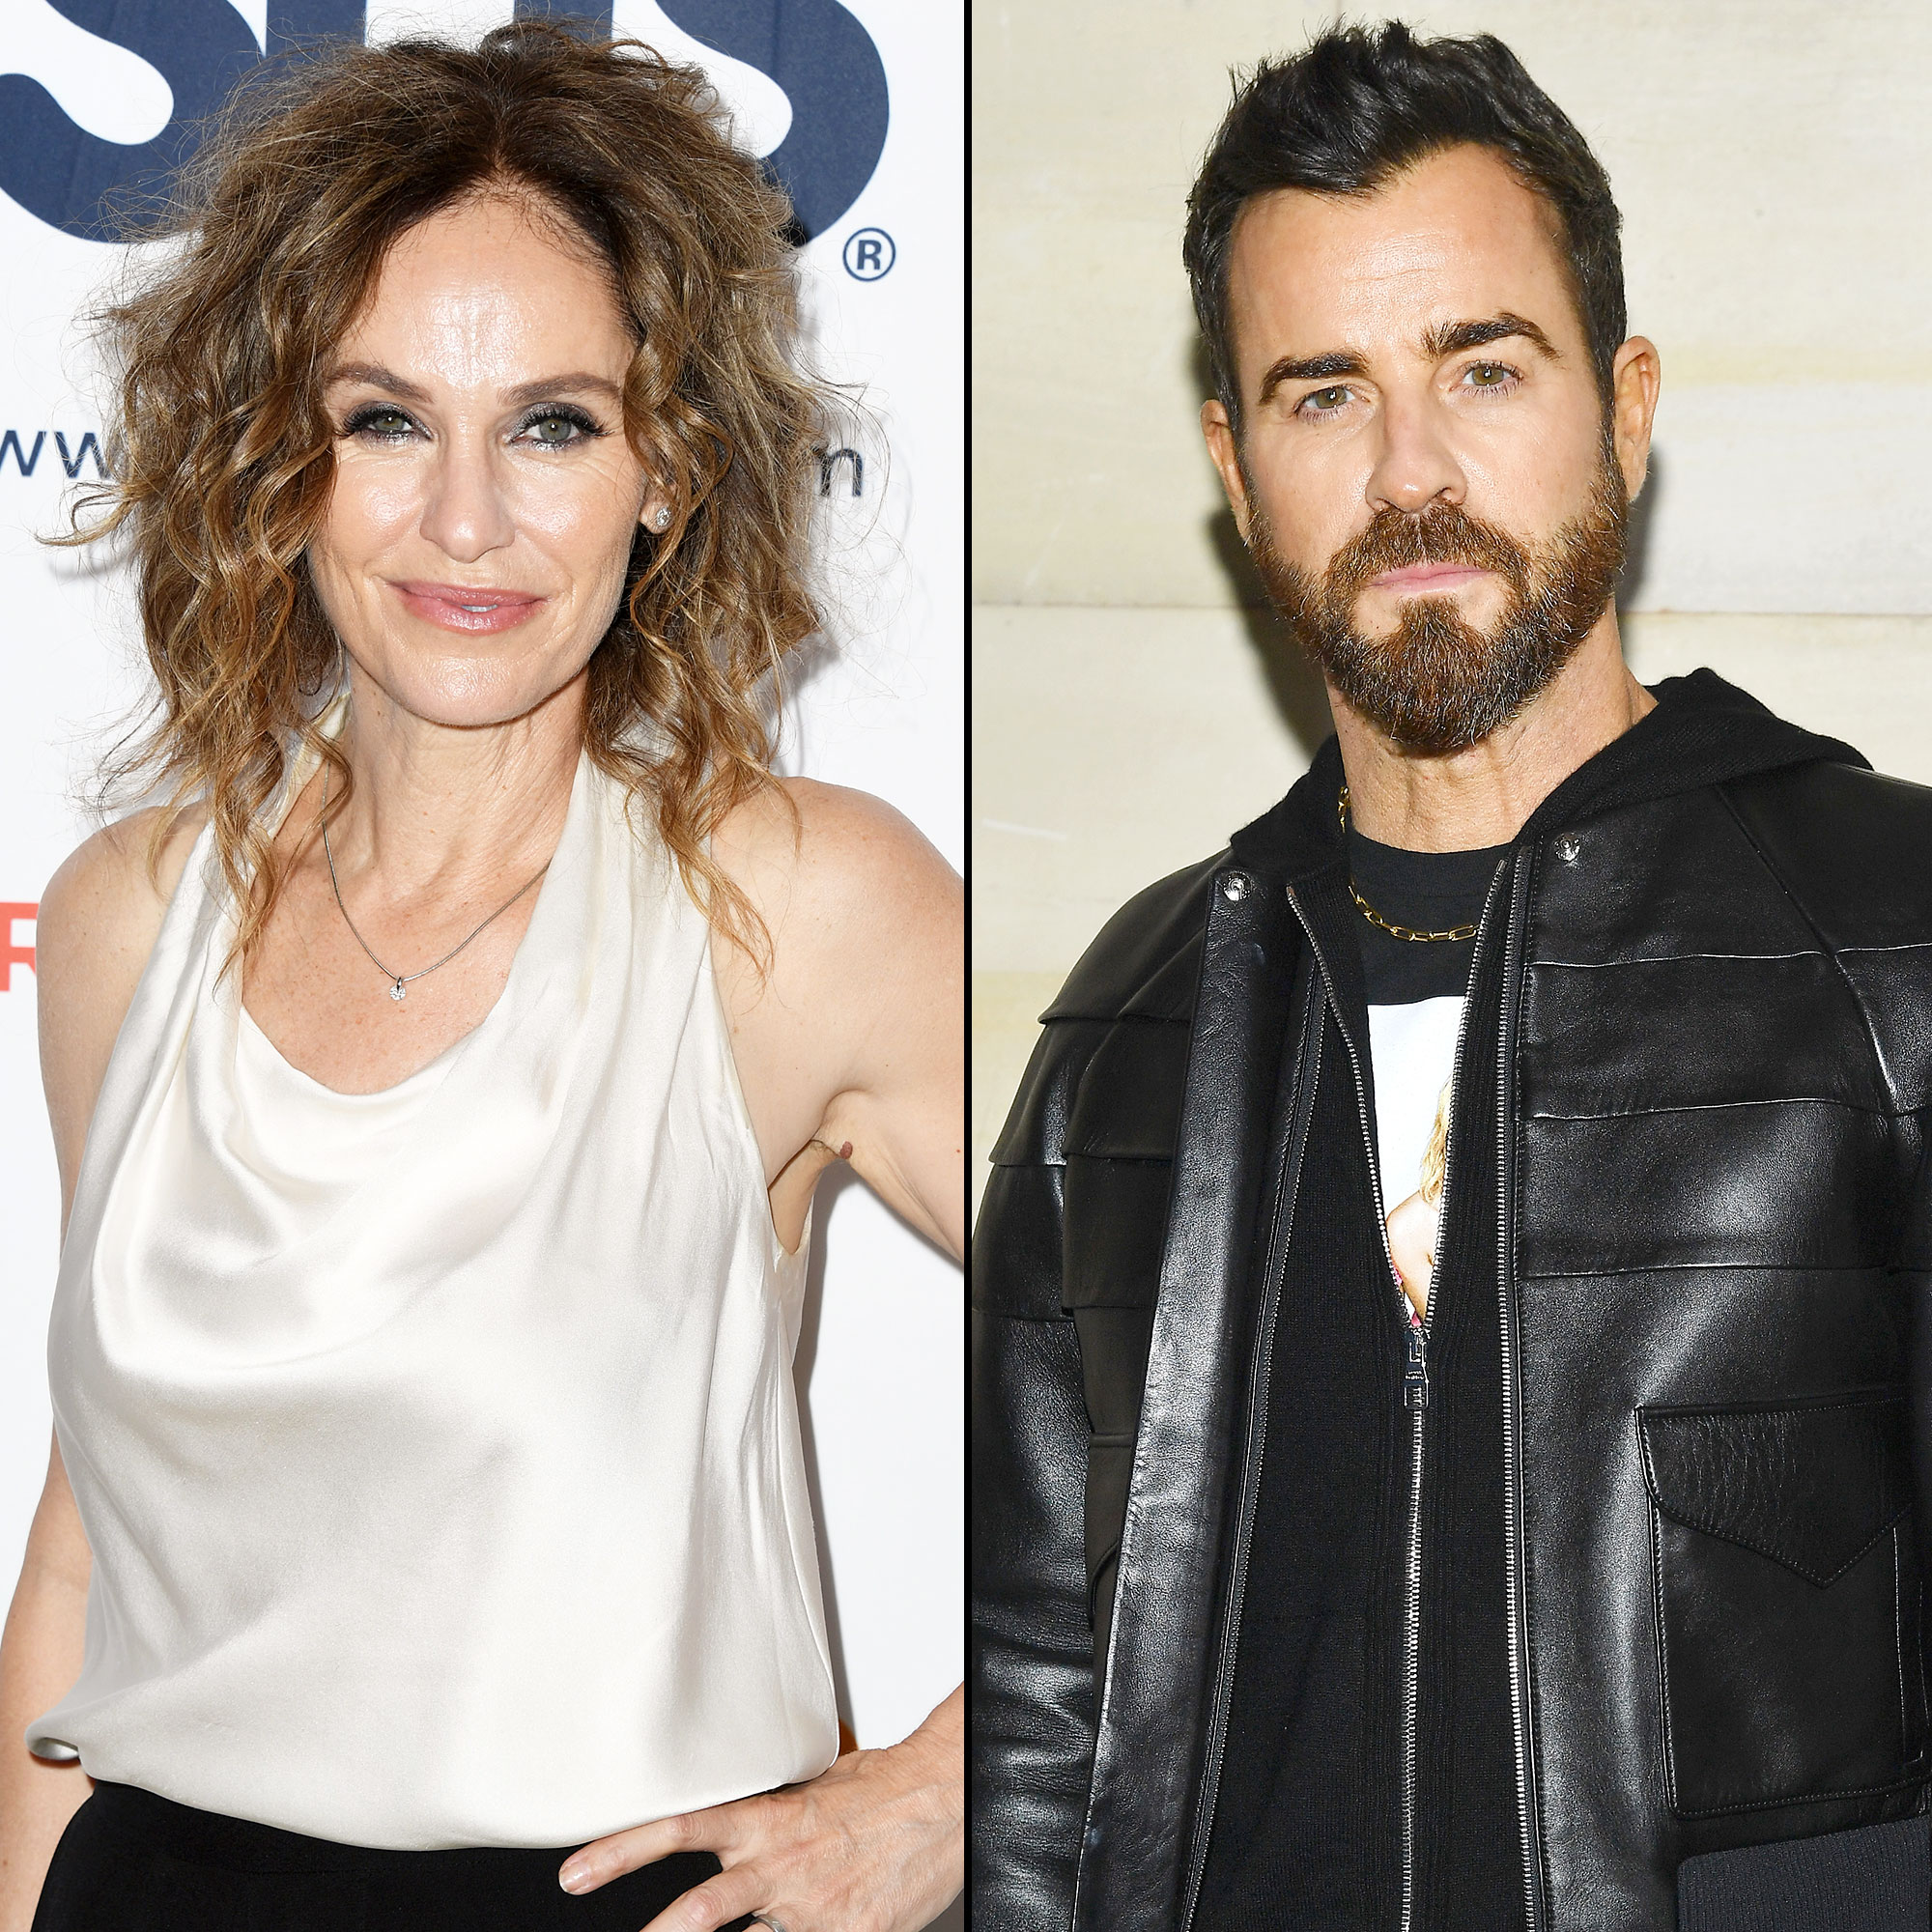 Theroux dating 2018 is justin who Justin Theroux